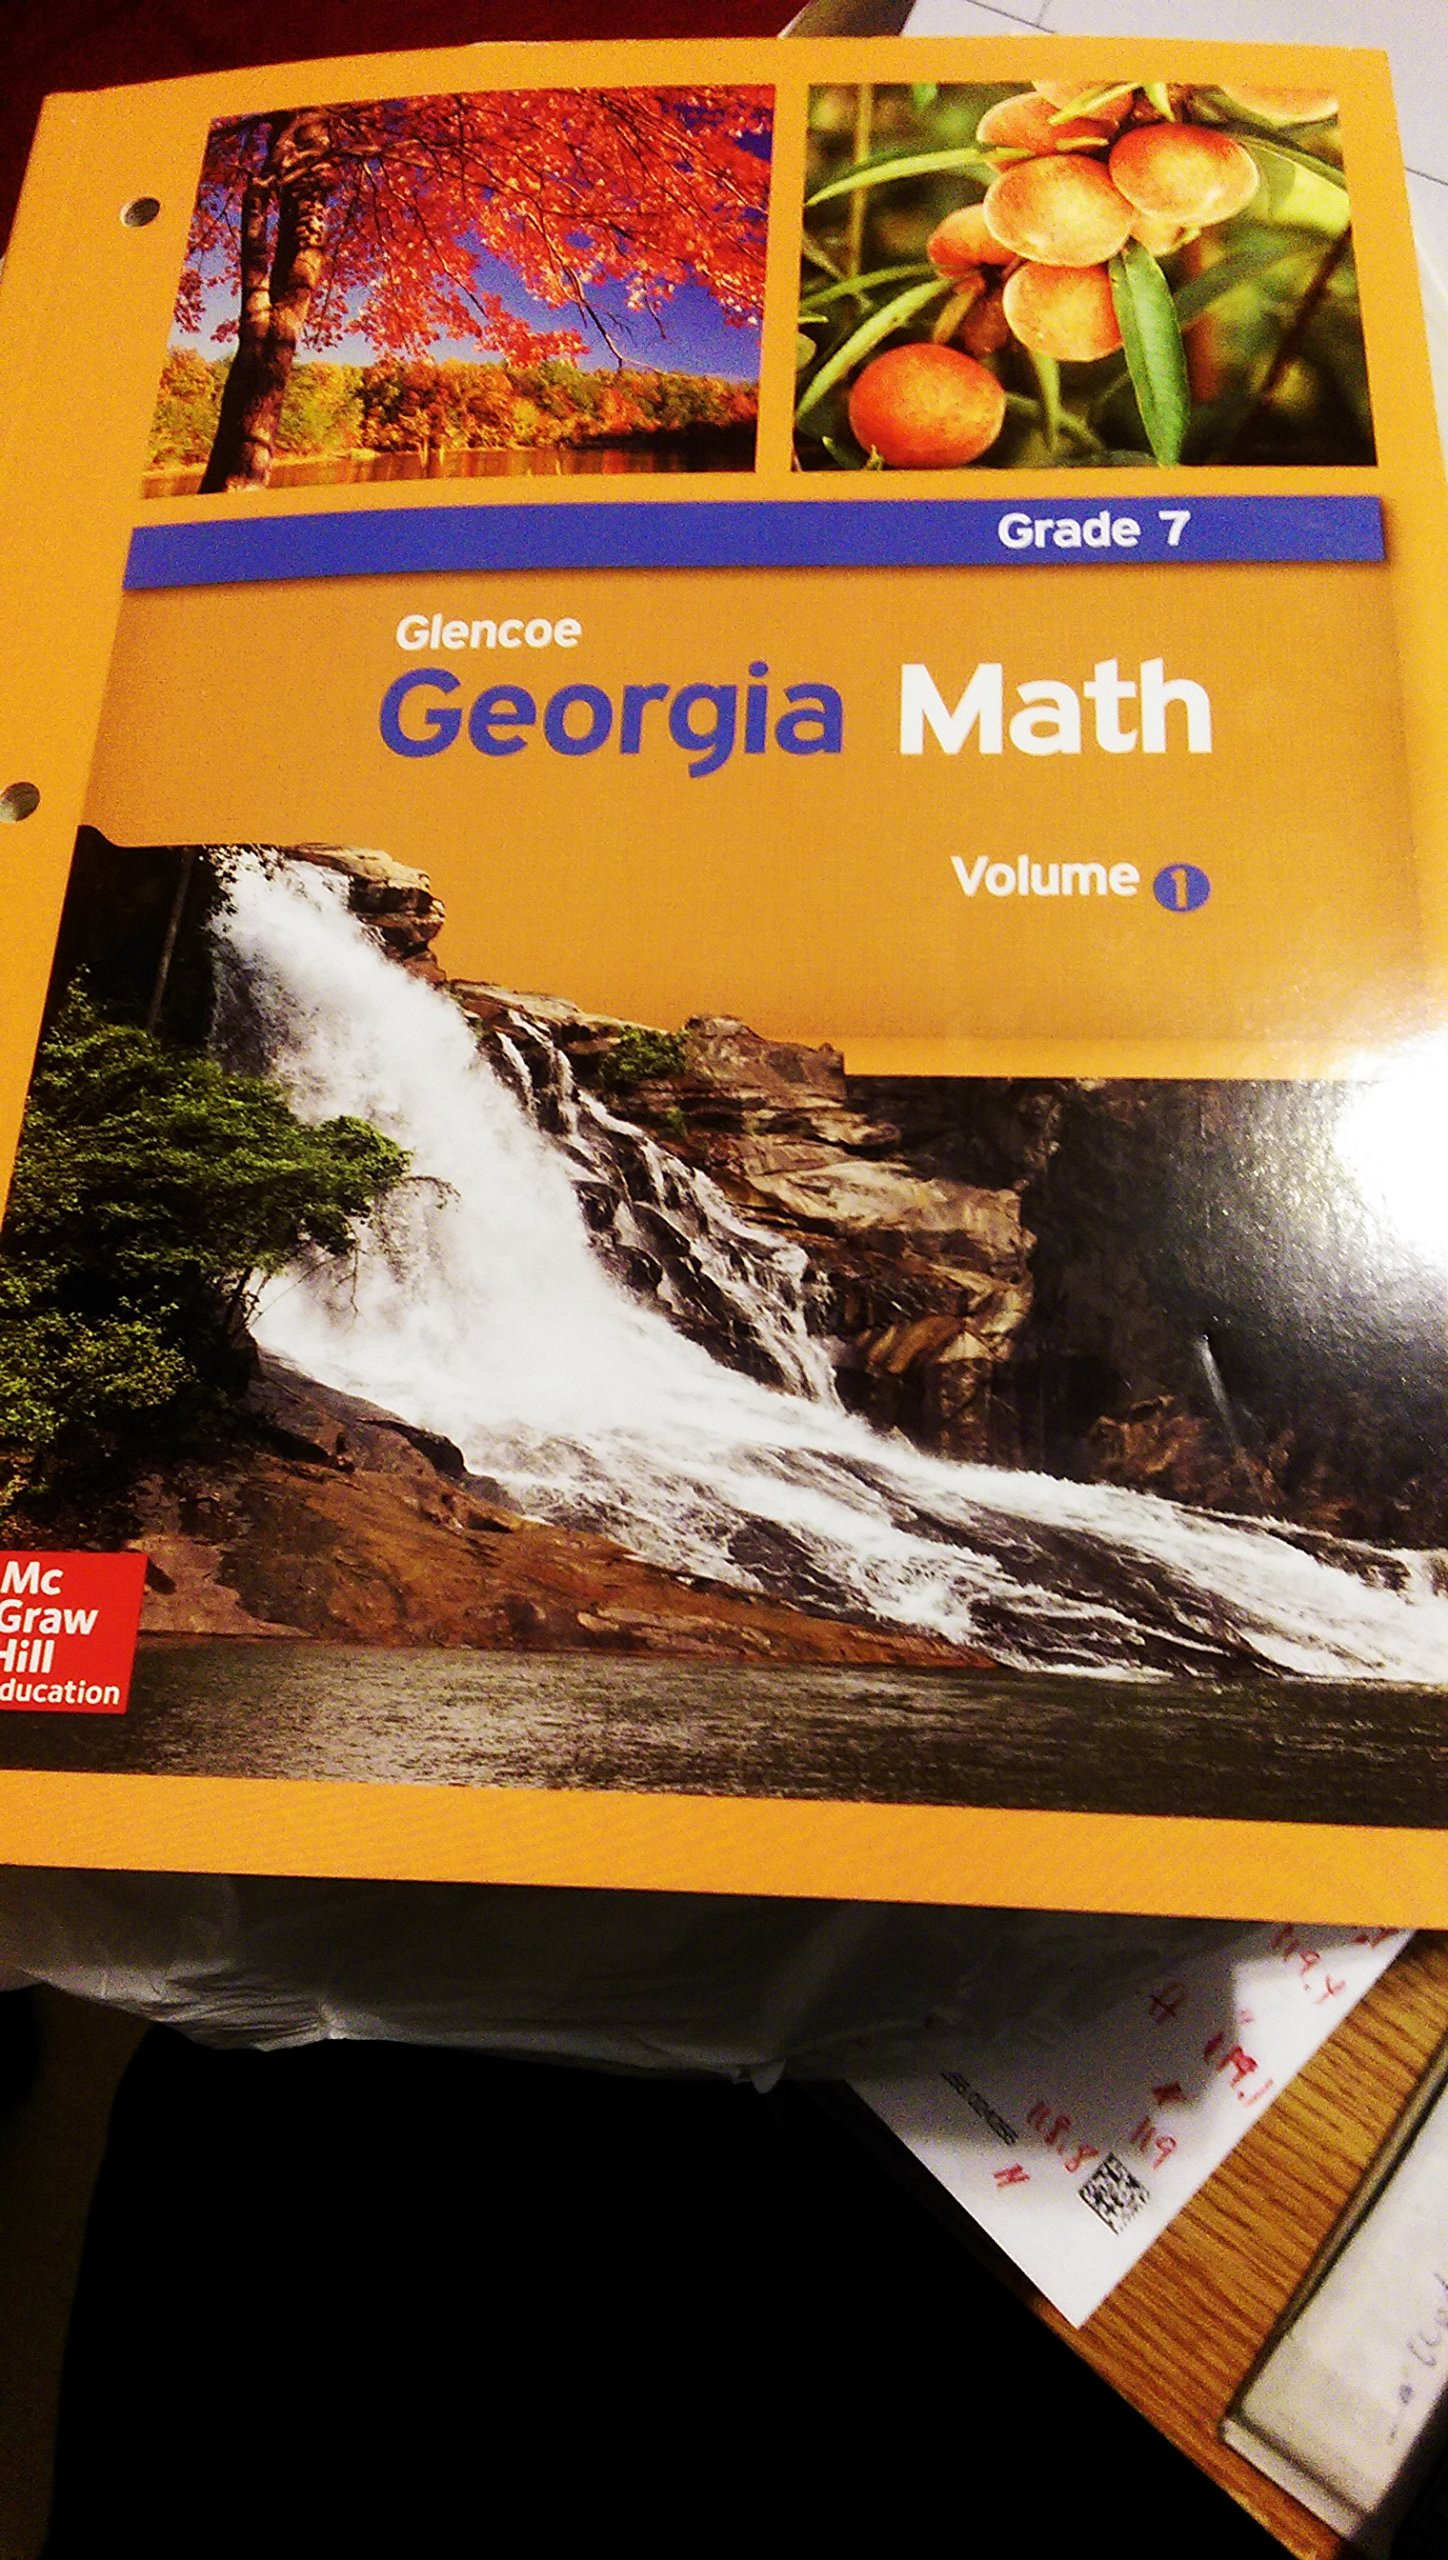 Glencoe Georgia Math, Grade 7, Volume 1: 9780076654857: Amazon com